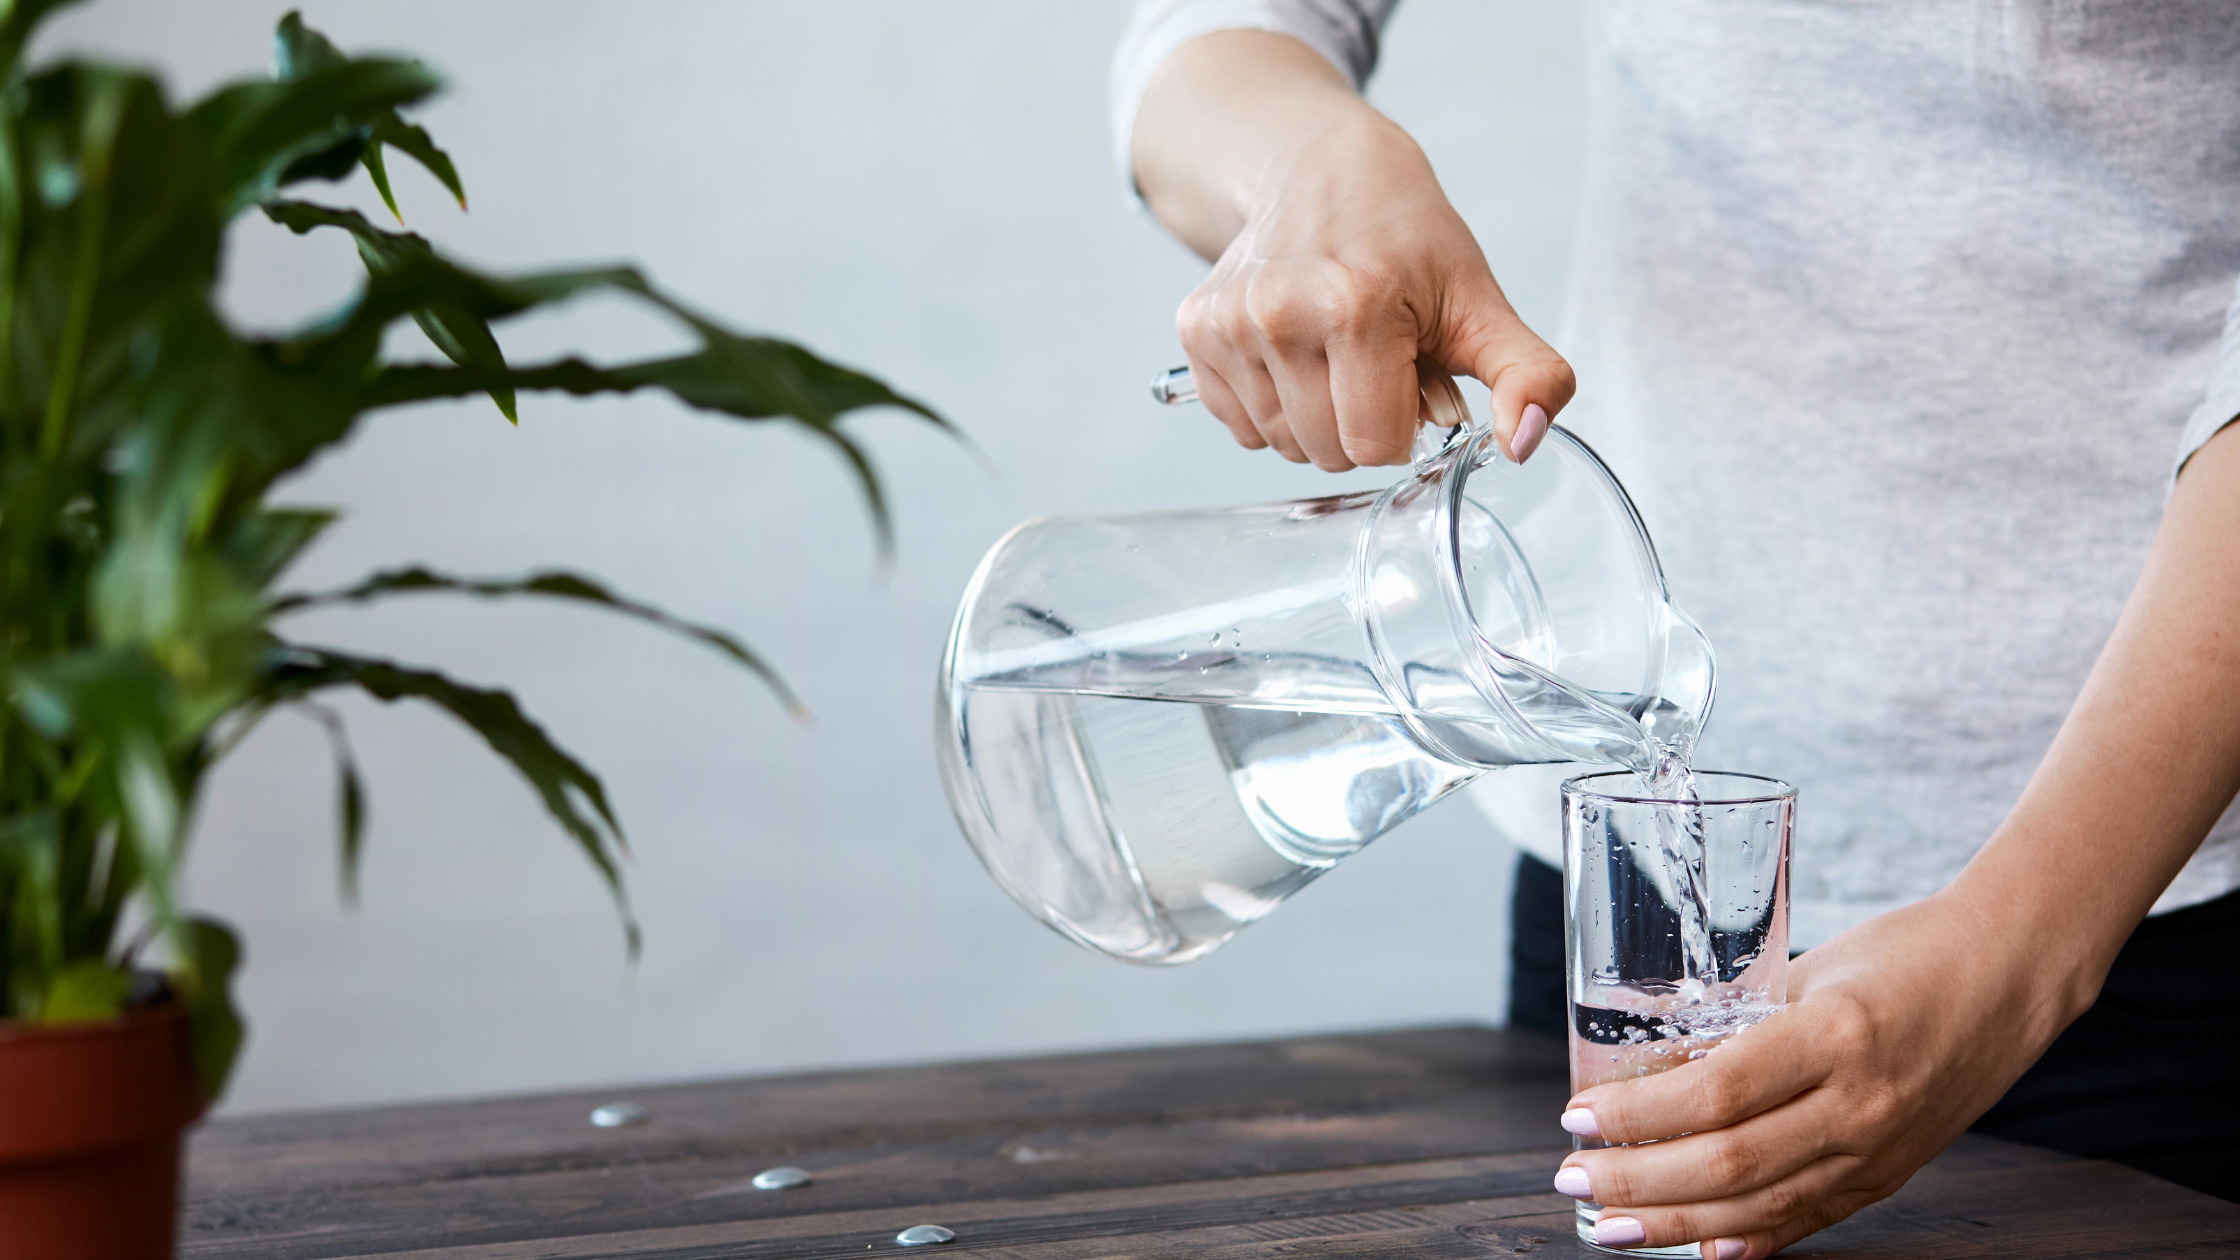 Woman pouring a glass of water. Image: canva